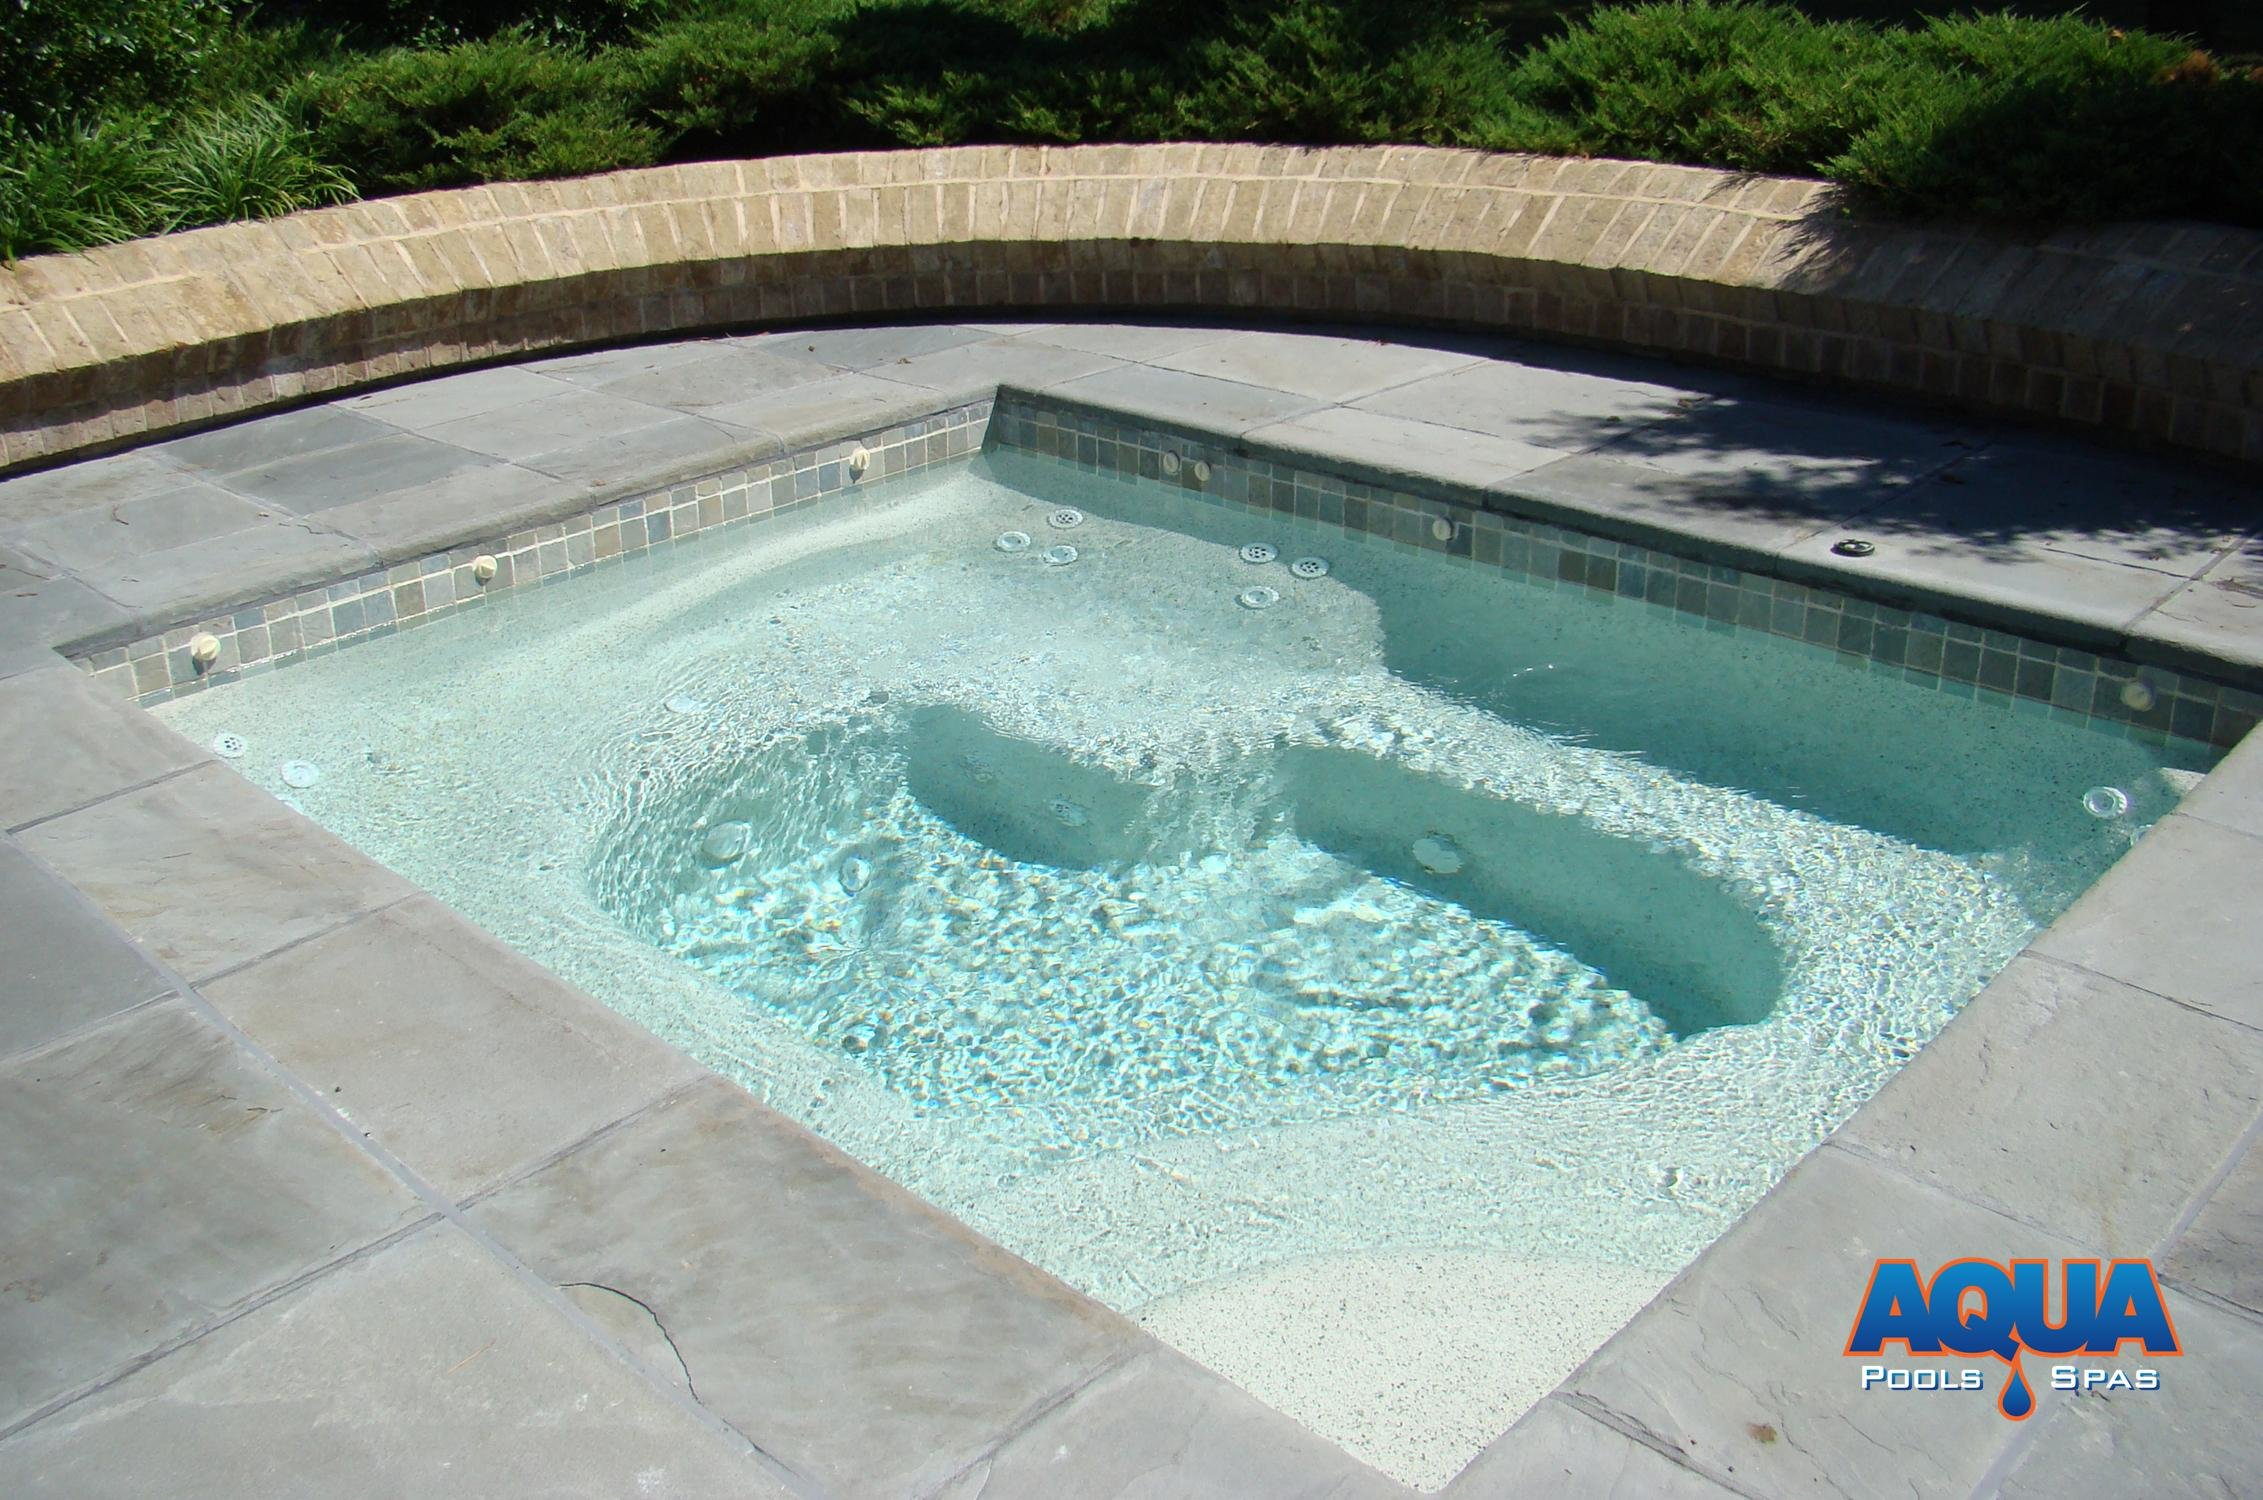 Jacuzzi Pool Jet Custom Spas Custom Gunite Hot Tubs Aqua Pools And Spas